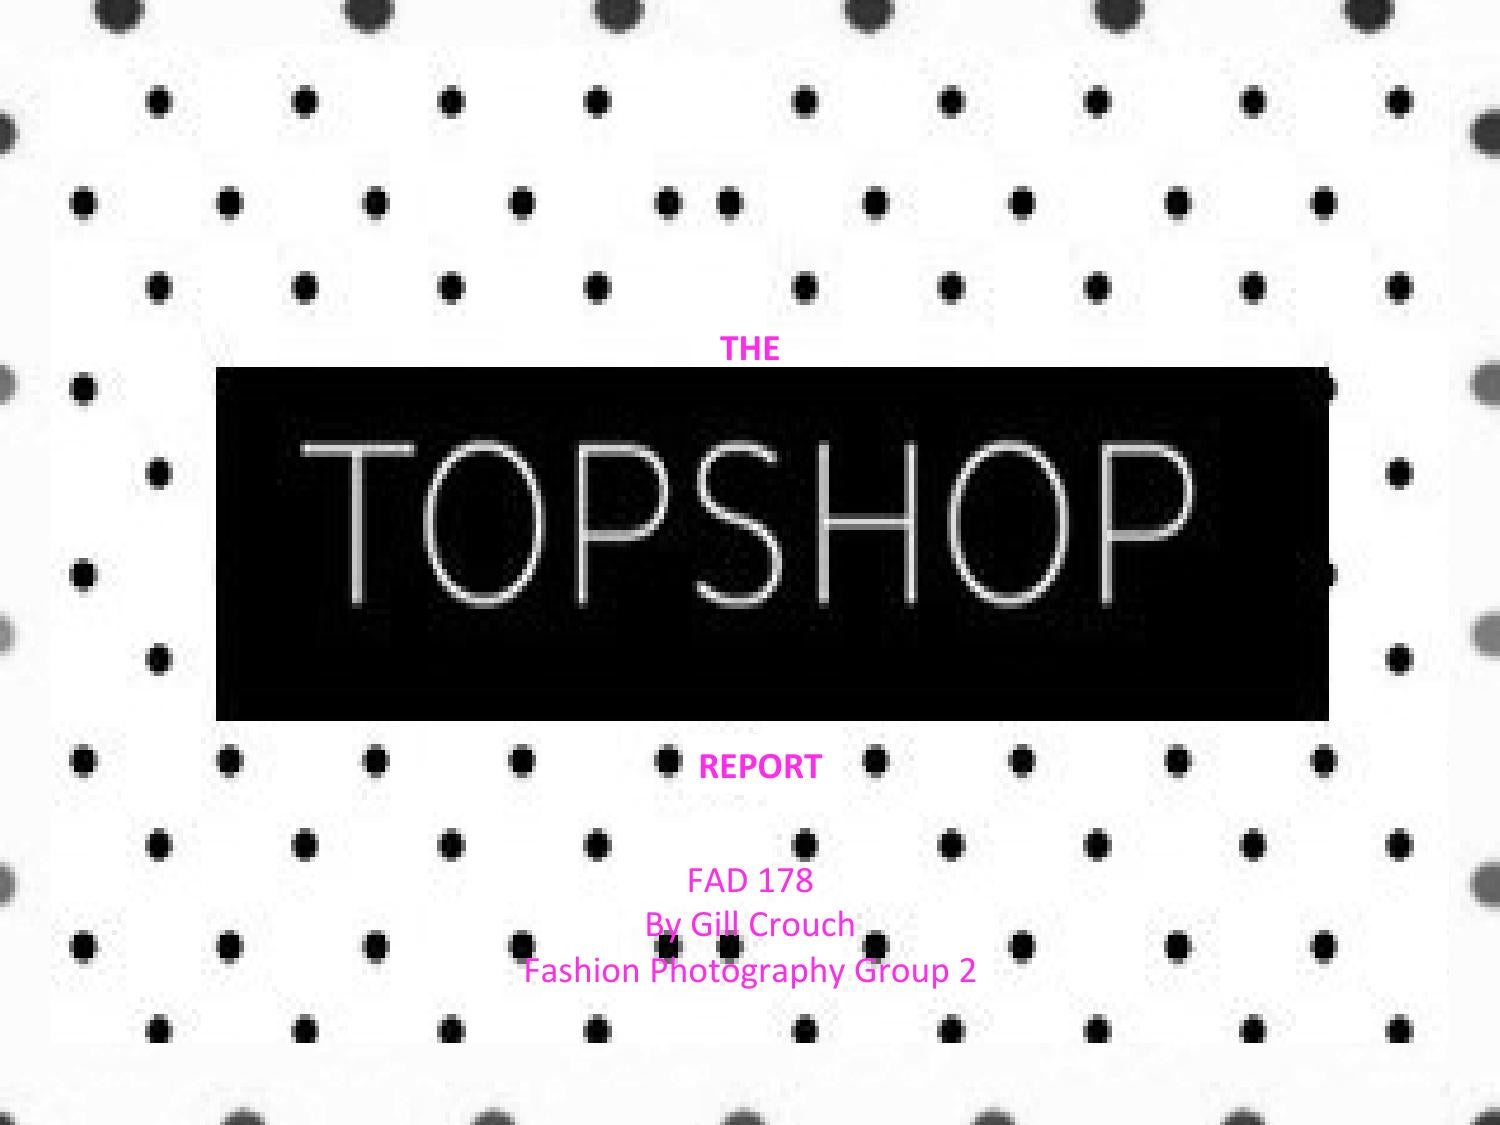 topshop marketing plan Marketing plan executive summary this marketing plan examines the case of topshop as a uk's fast-fashion retailer the following marketing plan is structured according the sostac framework.